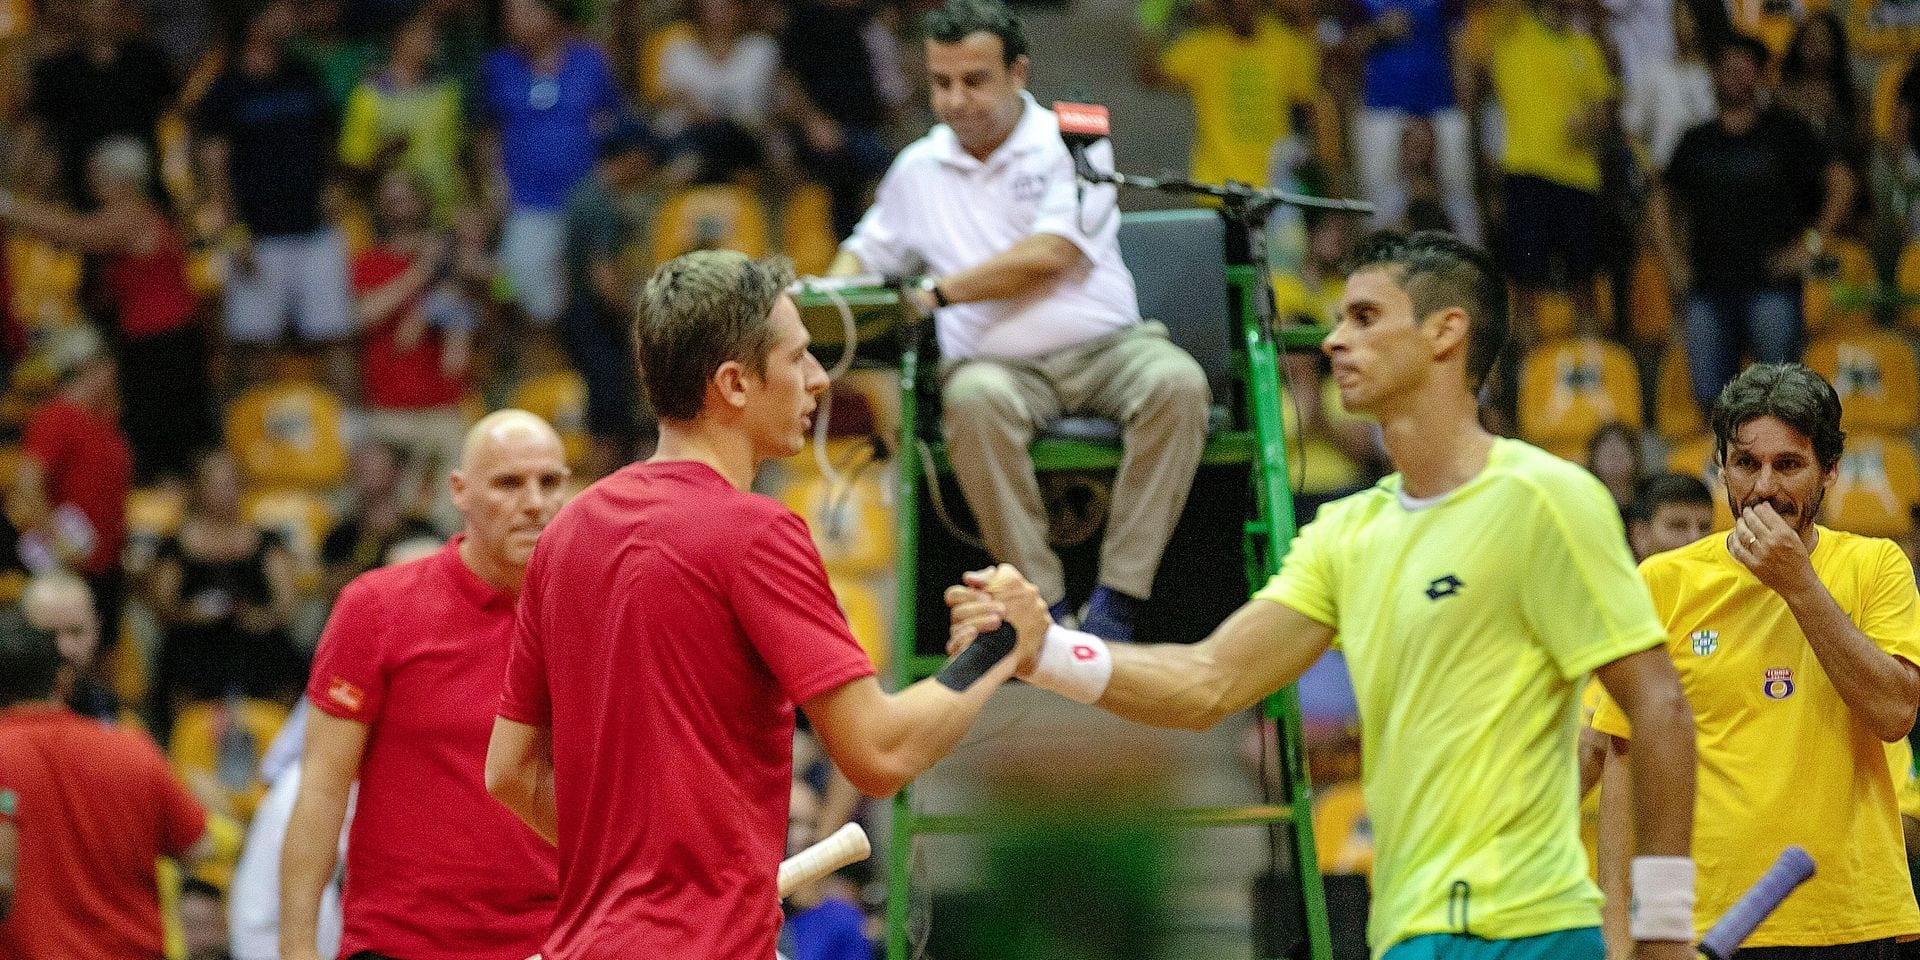 Belgia Kimmer Coppejans and Brazilian Rogerio Dutra Silva pictured after a tennis match between Brazil's Rogerio Dutra Silva and Belgium's Kimmer Coppejans, the second rubber of the Davis Cup World Group qualifications meeting between Brazil and Belgium, Friday 01 February 2019, in Uberlandia, Brazil. BELGA PHOTO BETO OLIVEIRA